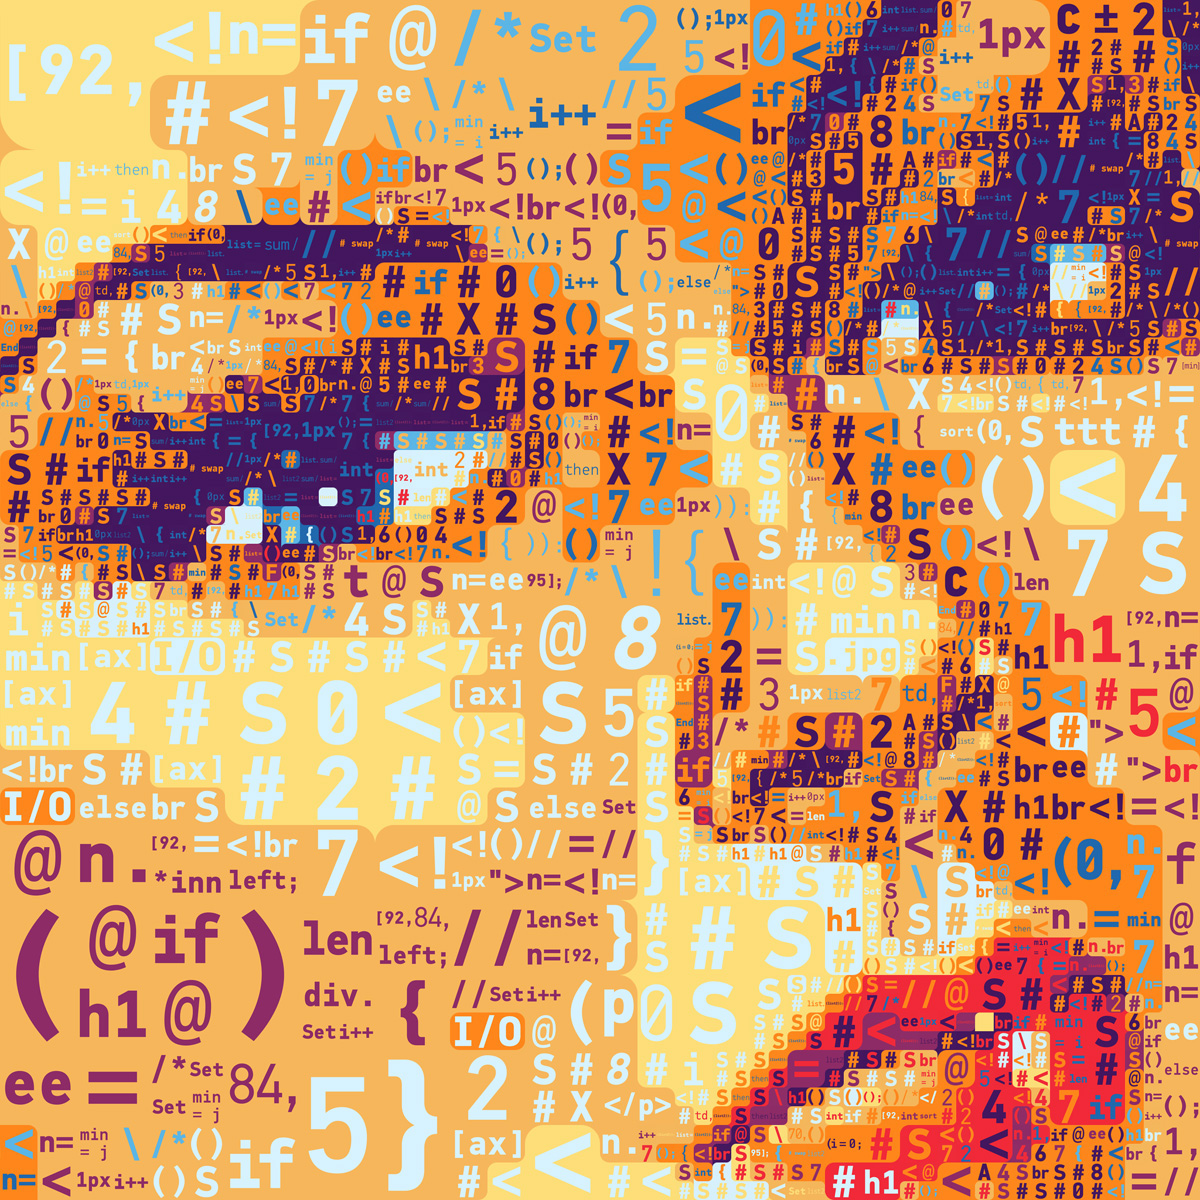 A mosaic portrait of Rosie the Riveter made out of code. Created by Charis Tsevis for an article on Mother Jones magazine.